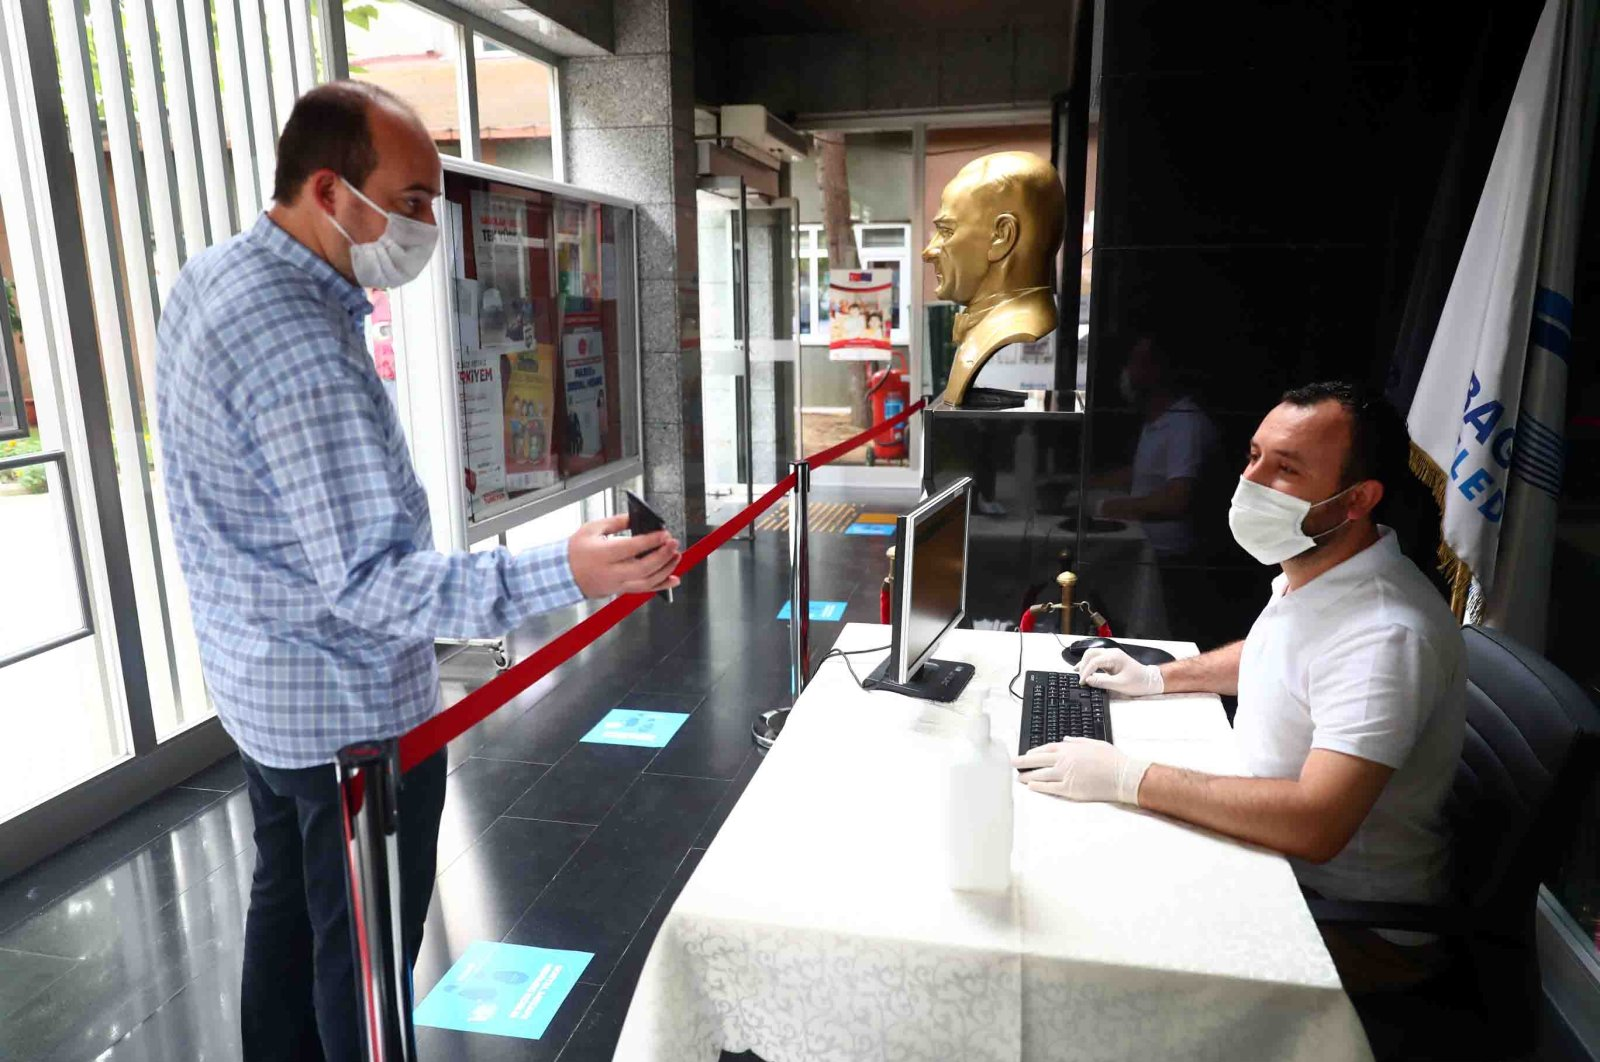 A man shows his HES code via phone to a receptionist as he enters a municipality building in Bağcılar district, Istanbul, Turkey, Sept. 23, 2020. (DHA Photo)